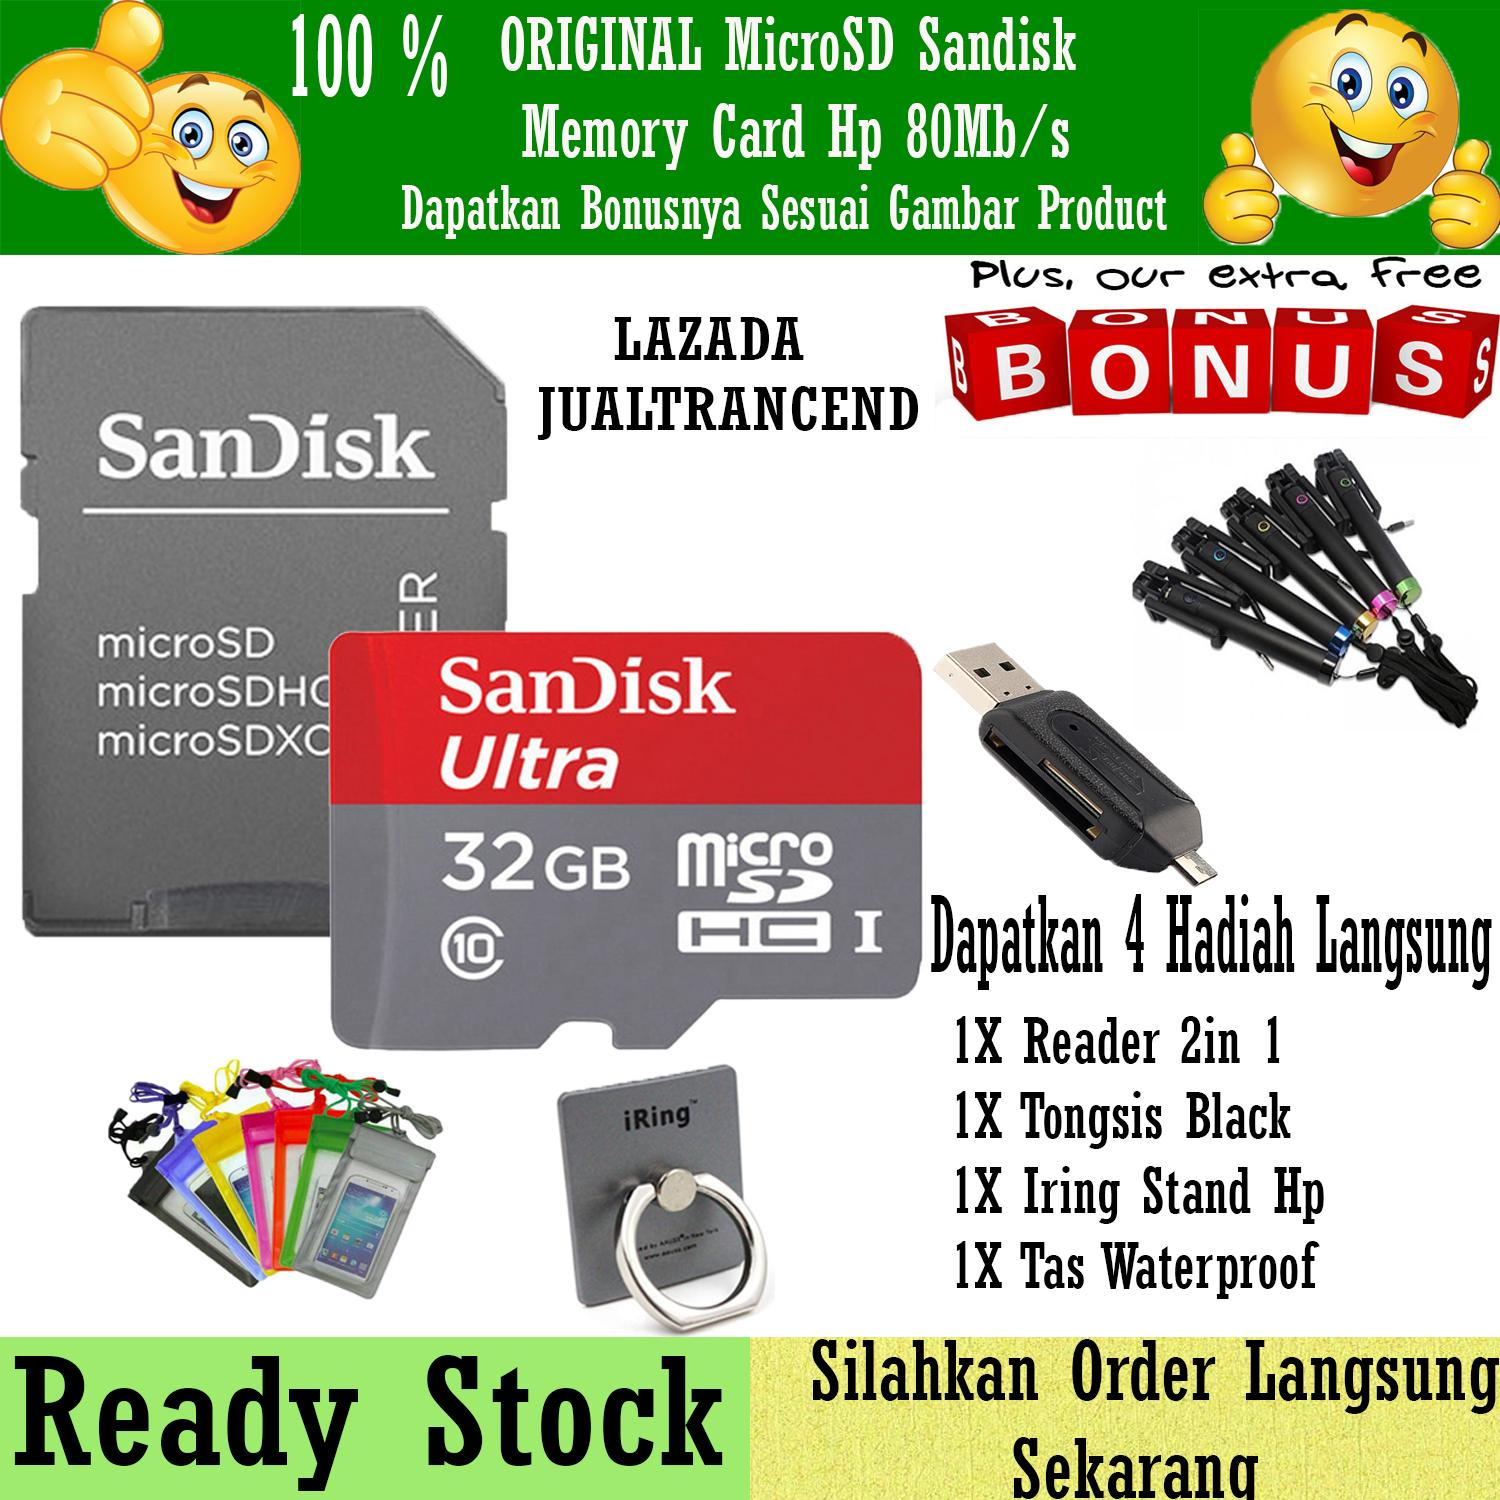 SanDisk Ultra Micro SD 32GB 80MB/s Class 10 UHS + Gratis Reader 2in1 +